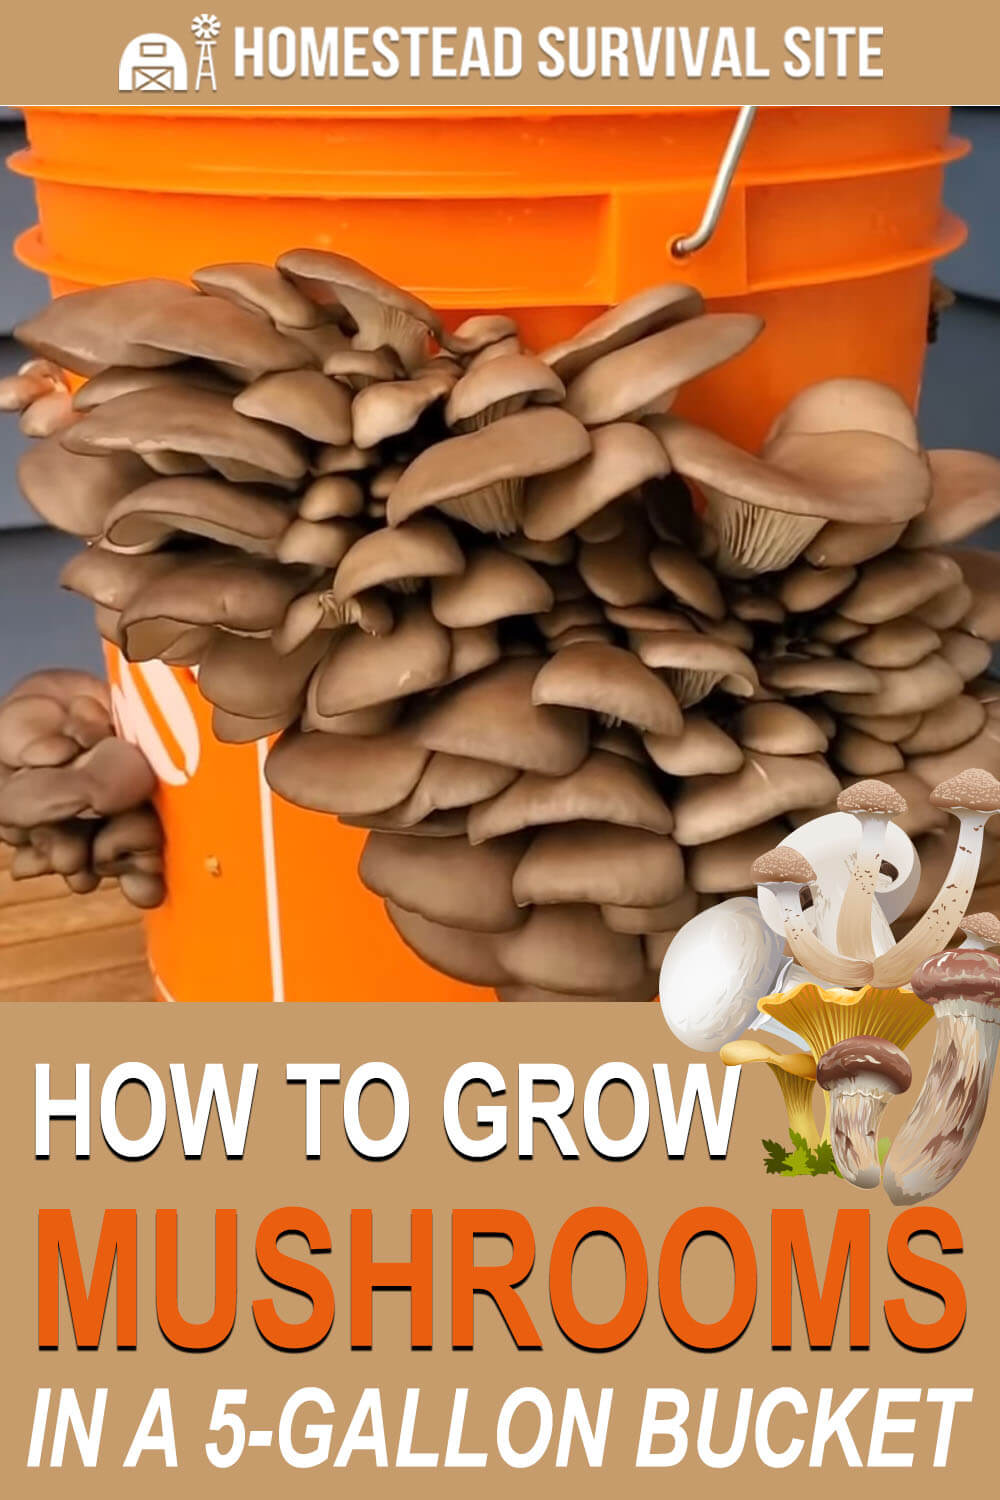 How to Grow Mushrooms in a 5-Gallon Bucket